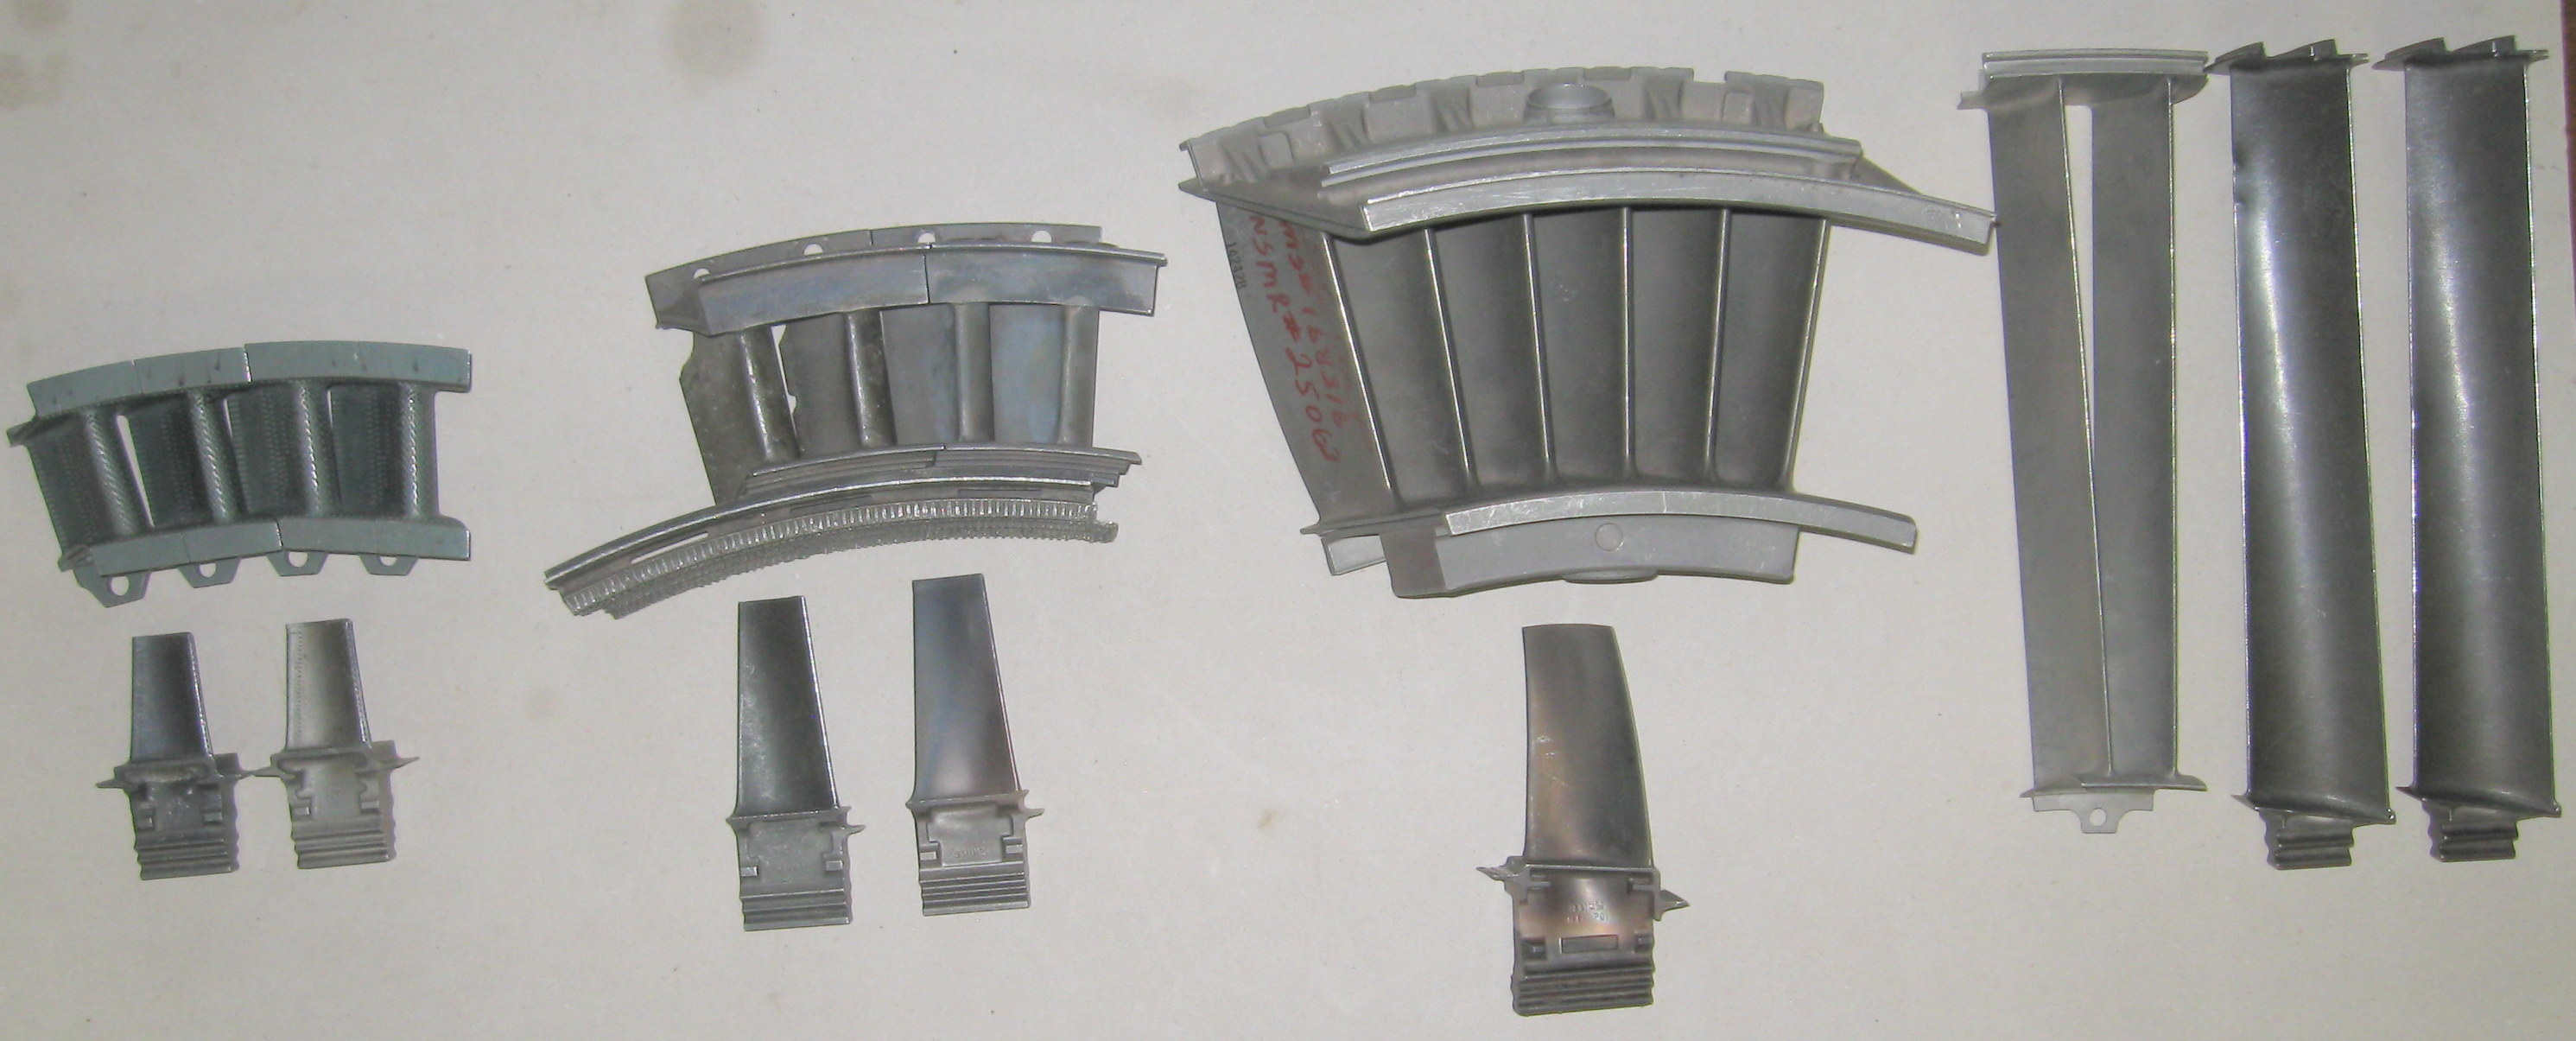 File Gas turbine nozzles and blades Wikimedia mons